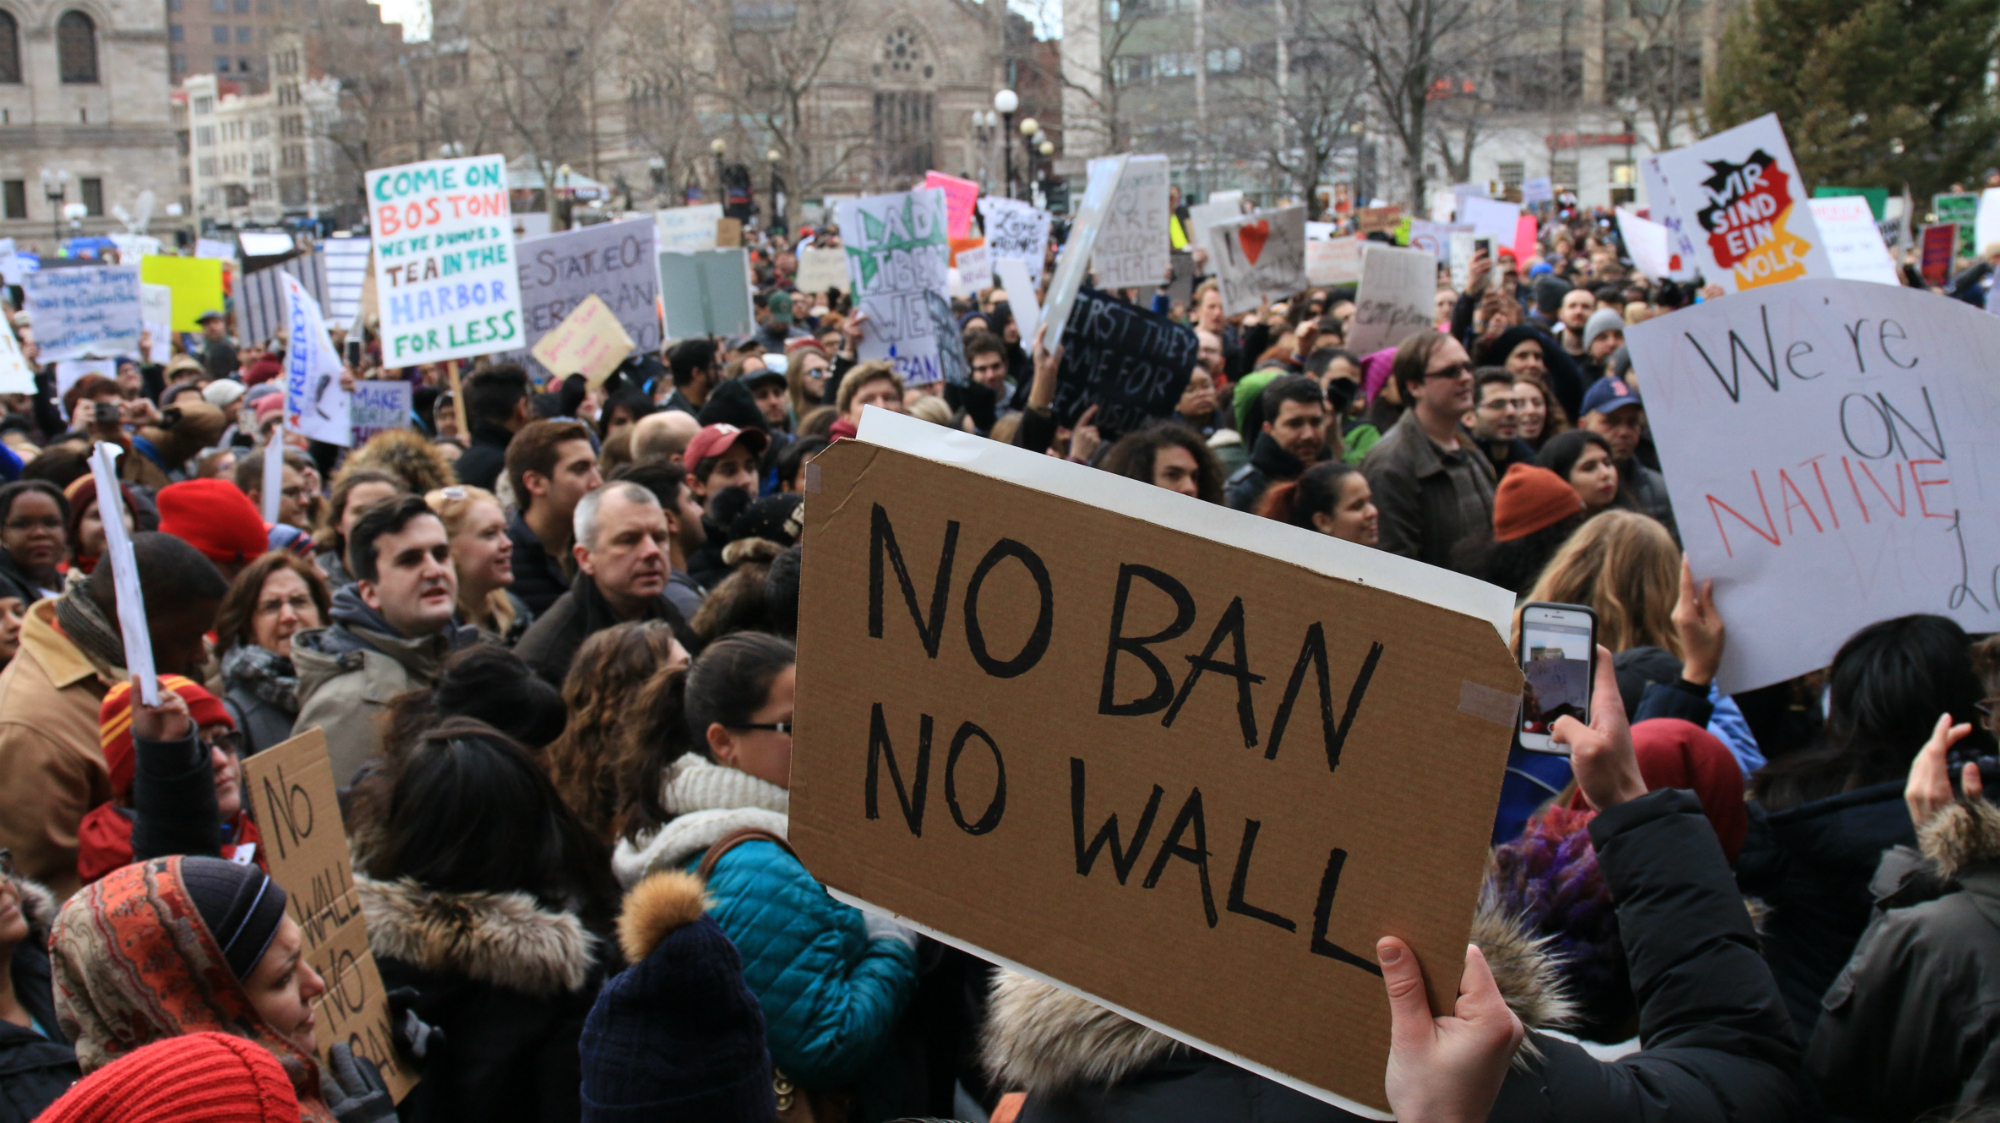 """The debate on immigration has become extremely polarized. How do you write stories that say something new? Find people who've never been asked about their experiences. Pictured: protesters in Boston's Copley Square on Jan. 29, 2017, after President Donald Trump signed an executive order known as the """"Muslim ban."""" (Photo by Giulia Afiune/GroundTruth)"""